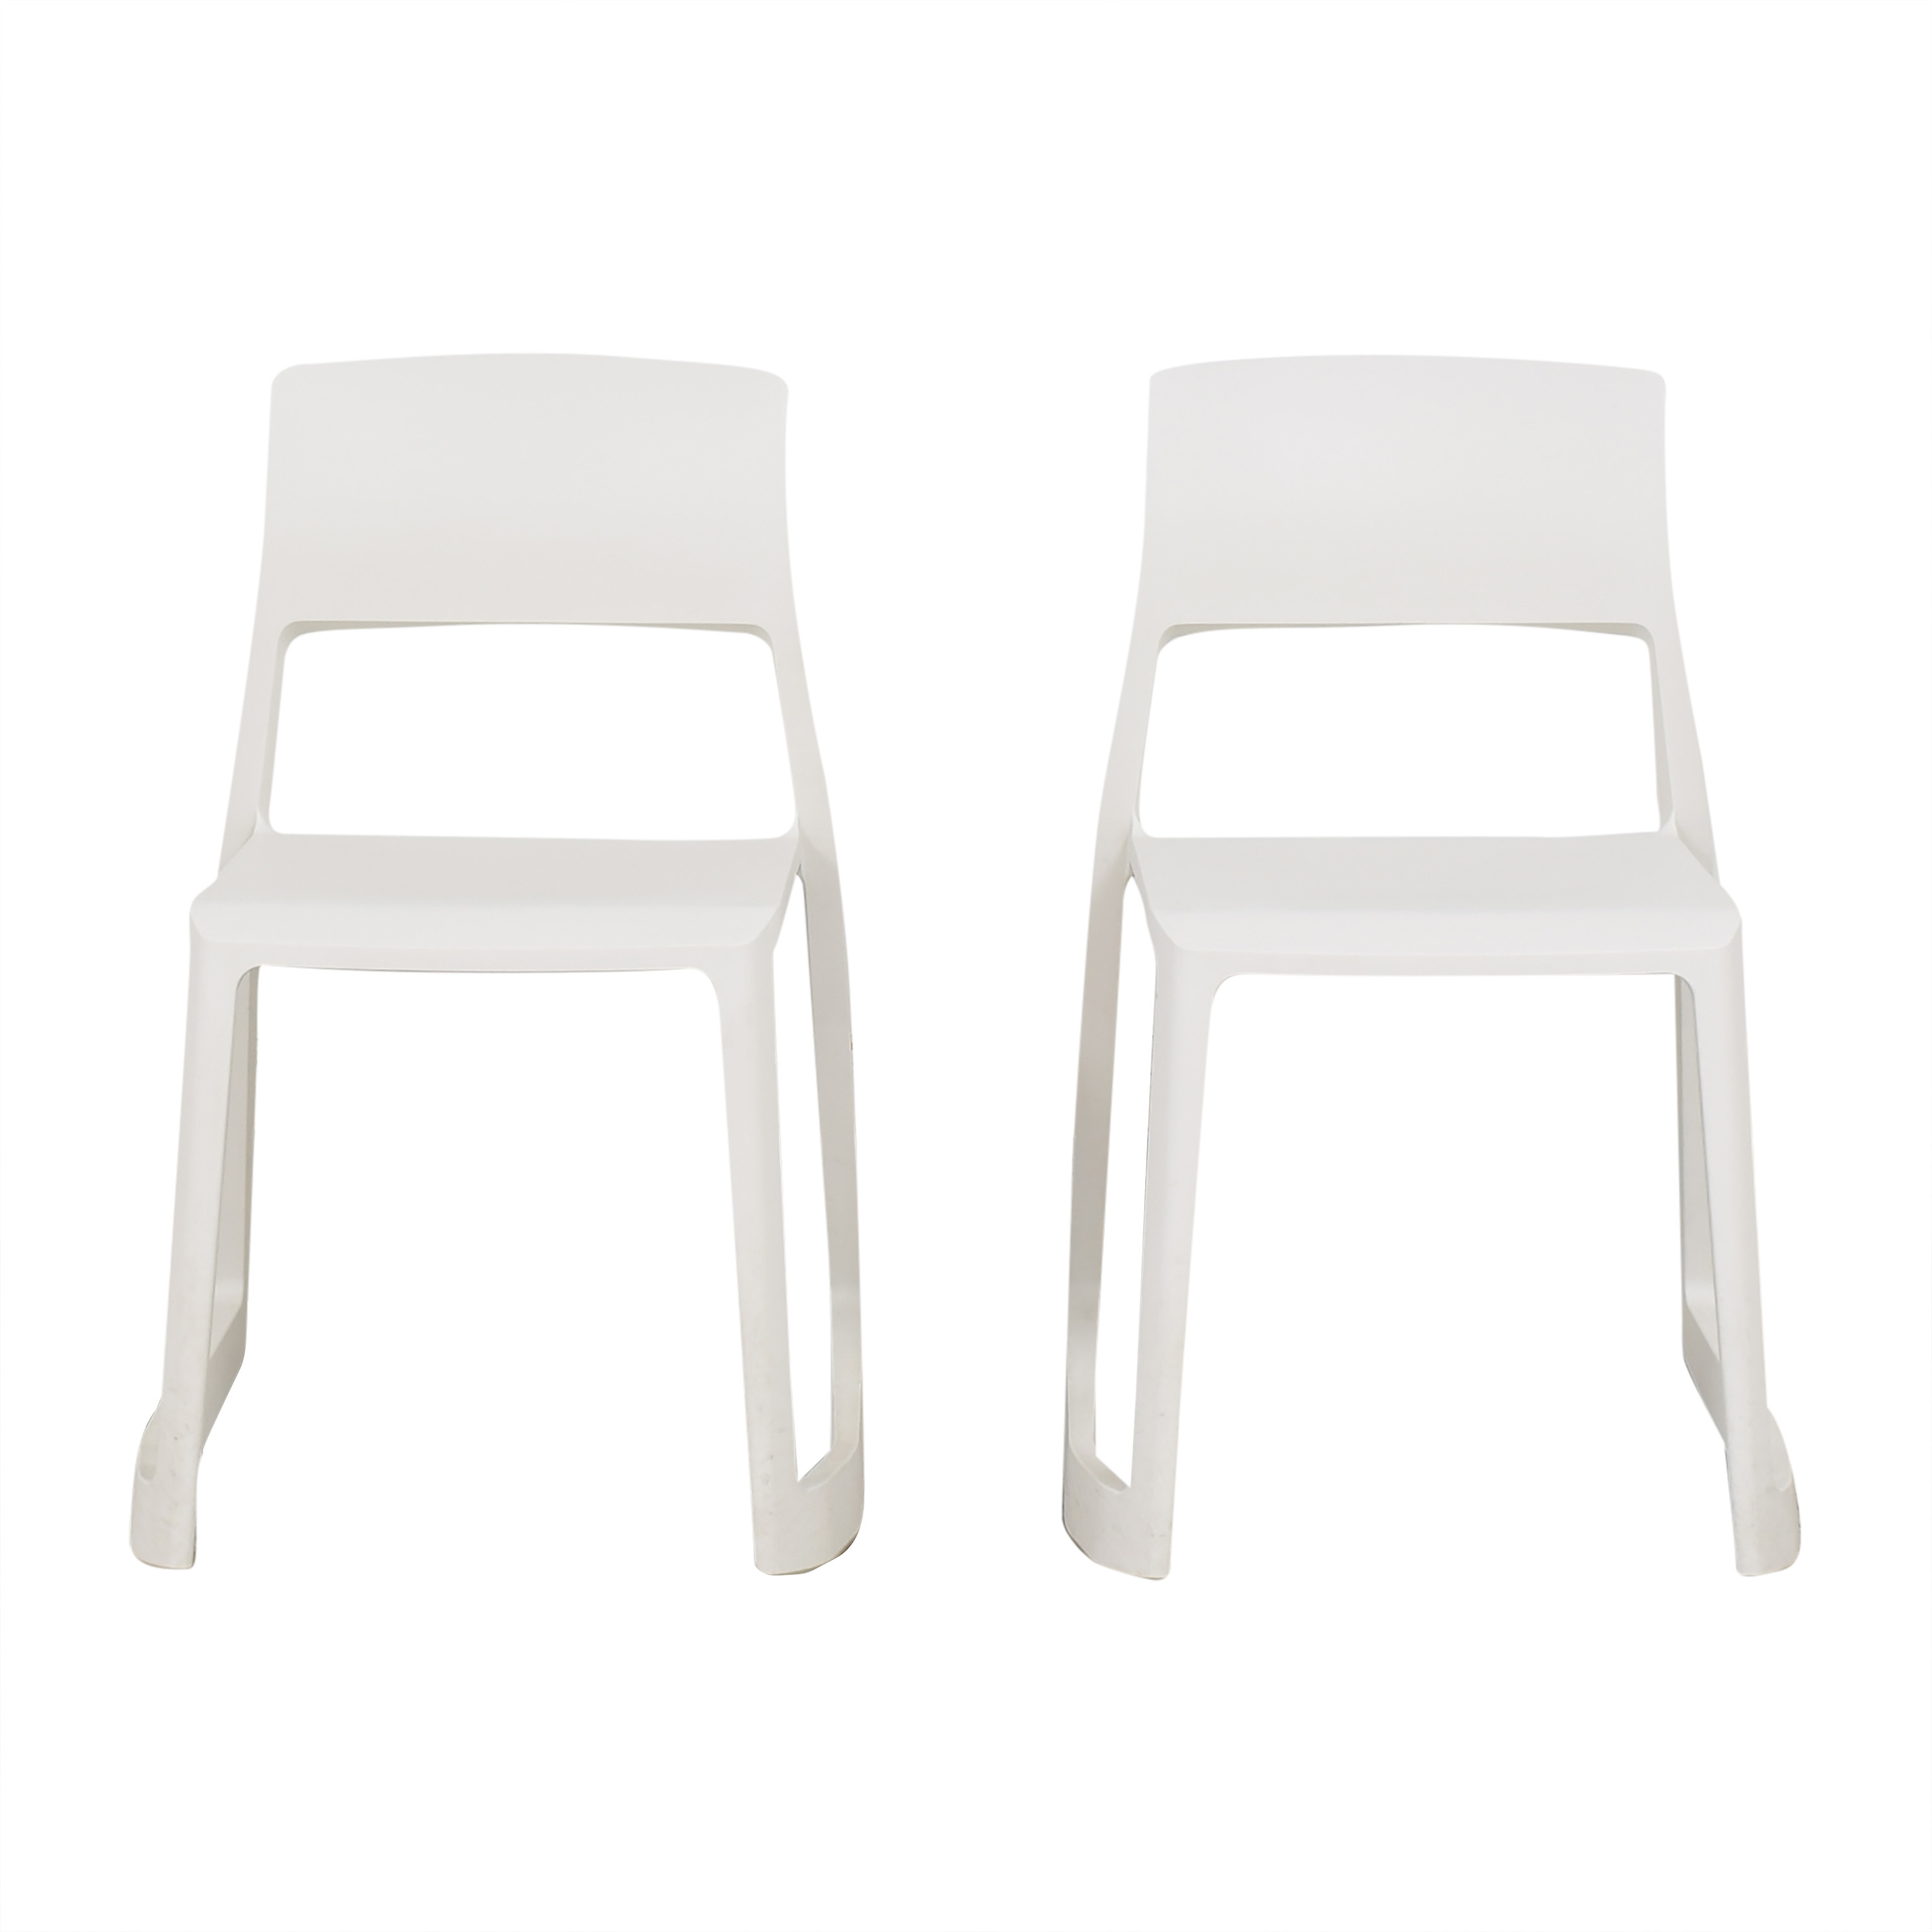 Vitra Tip Ton Chairs / Chairs